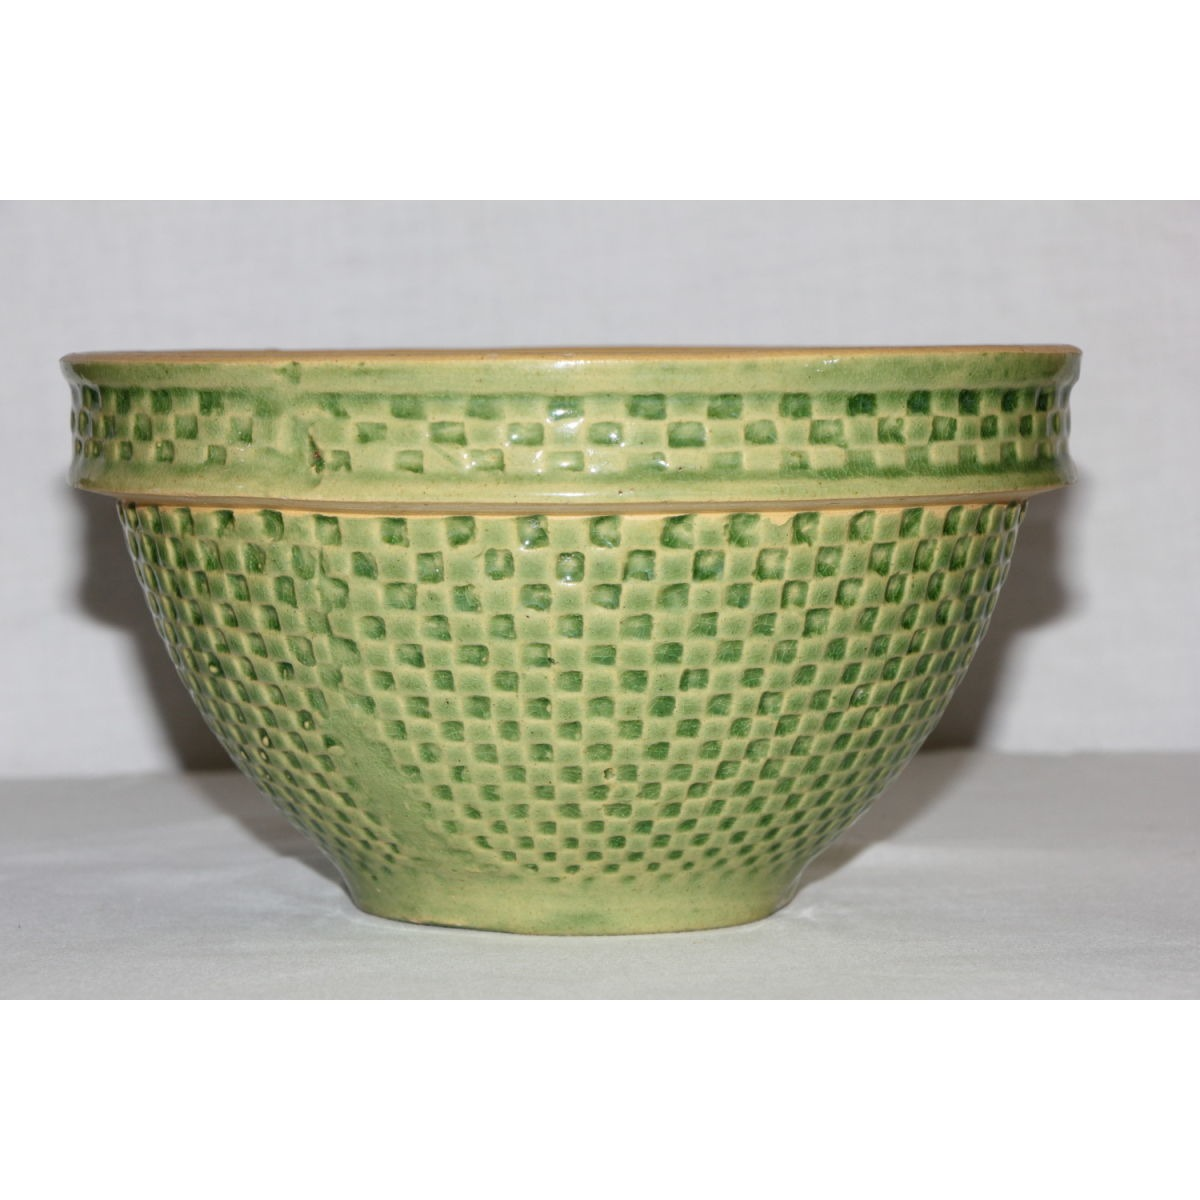 "Rare 7"" Green Glazed Yellowware Checkerboard Bowl"